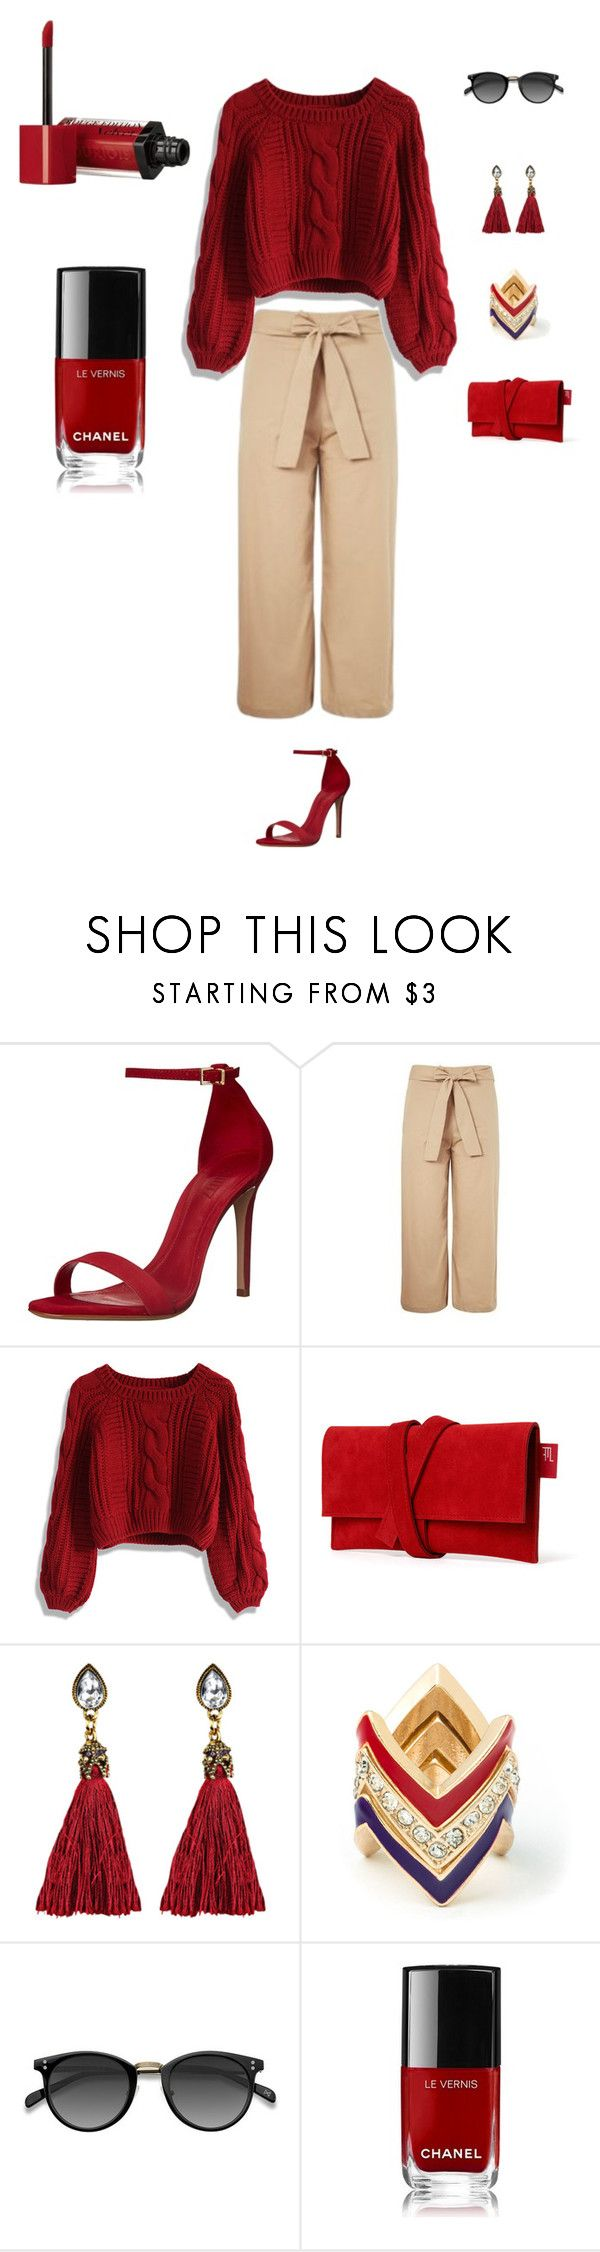 """""""Casual pop of red"""" by thefemininepursuit on Polyvore featuring Schutz, Topshop, Chicwish, JustFab, Ace, Chanel, Bourjois, casual, Color and red"""